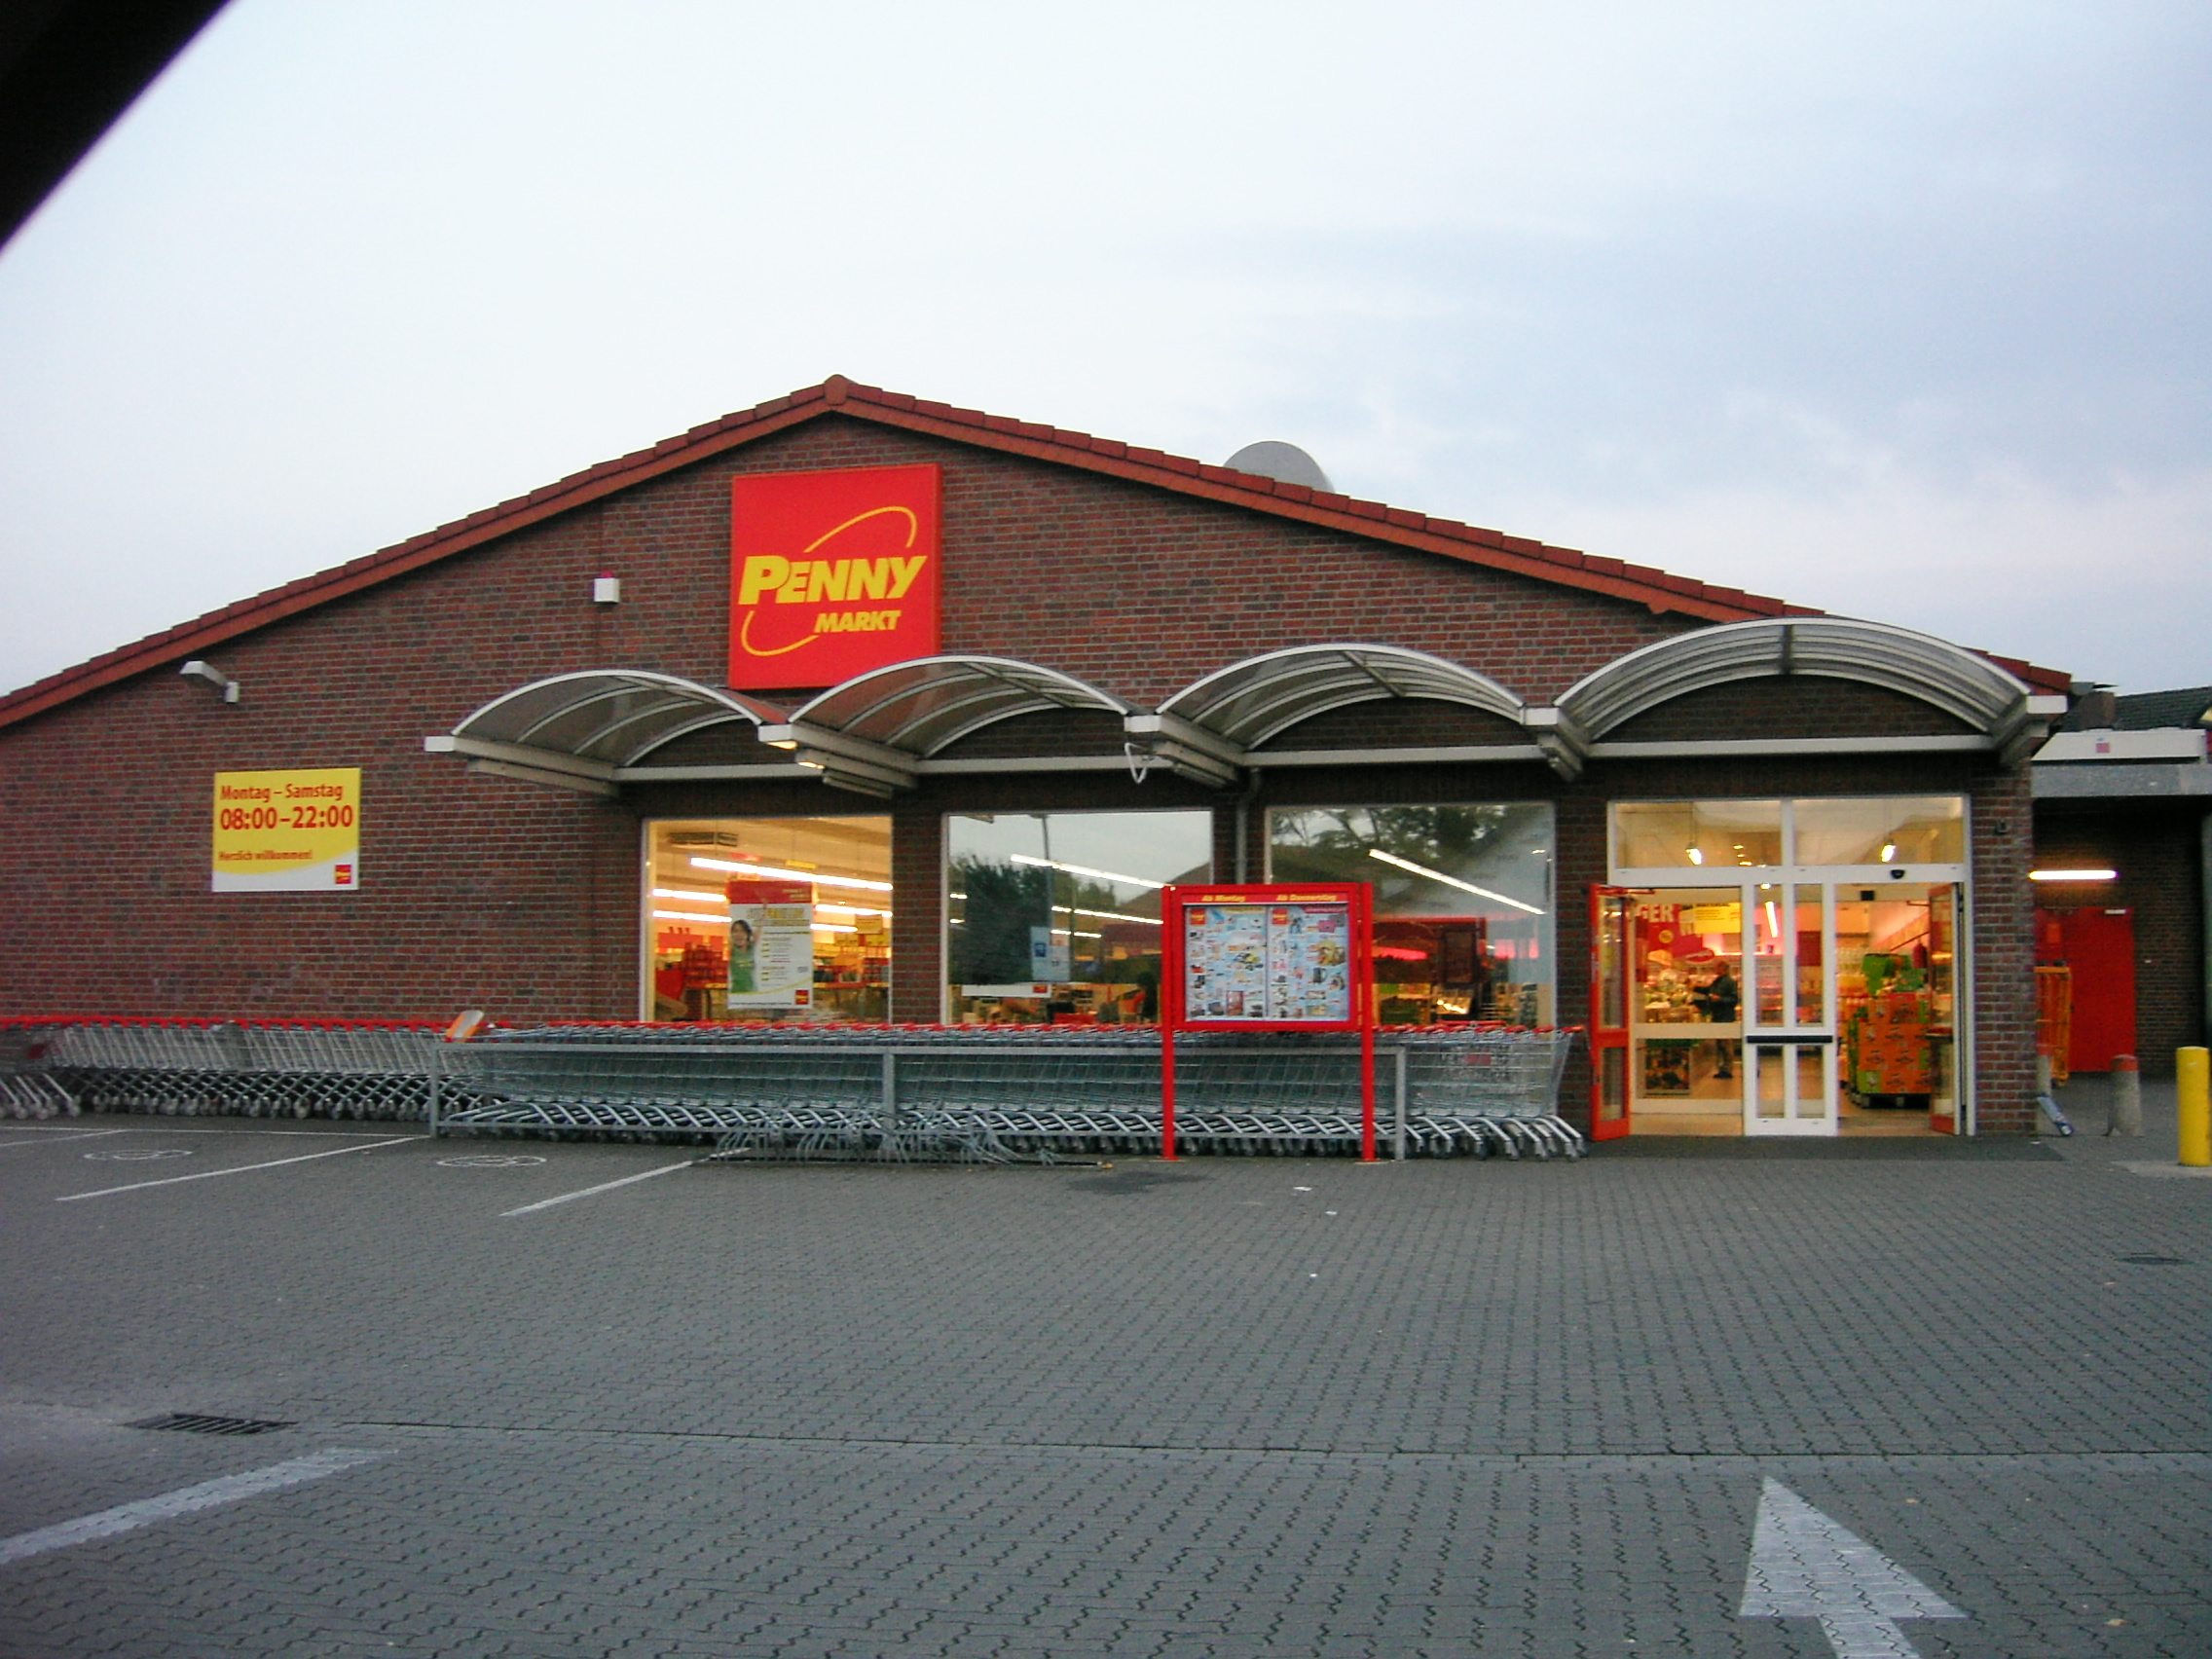 Food discounters in Germany, Penny